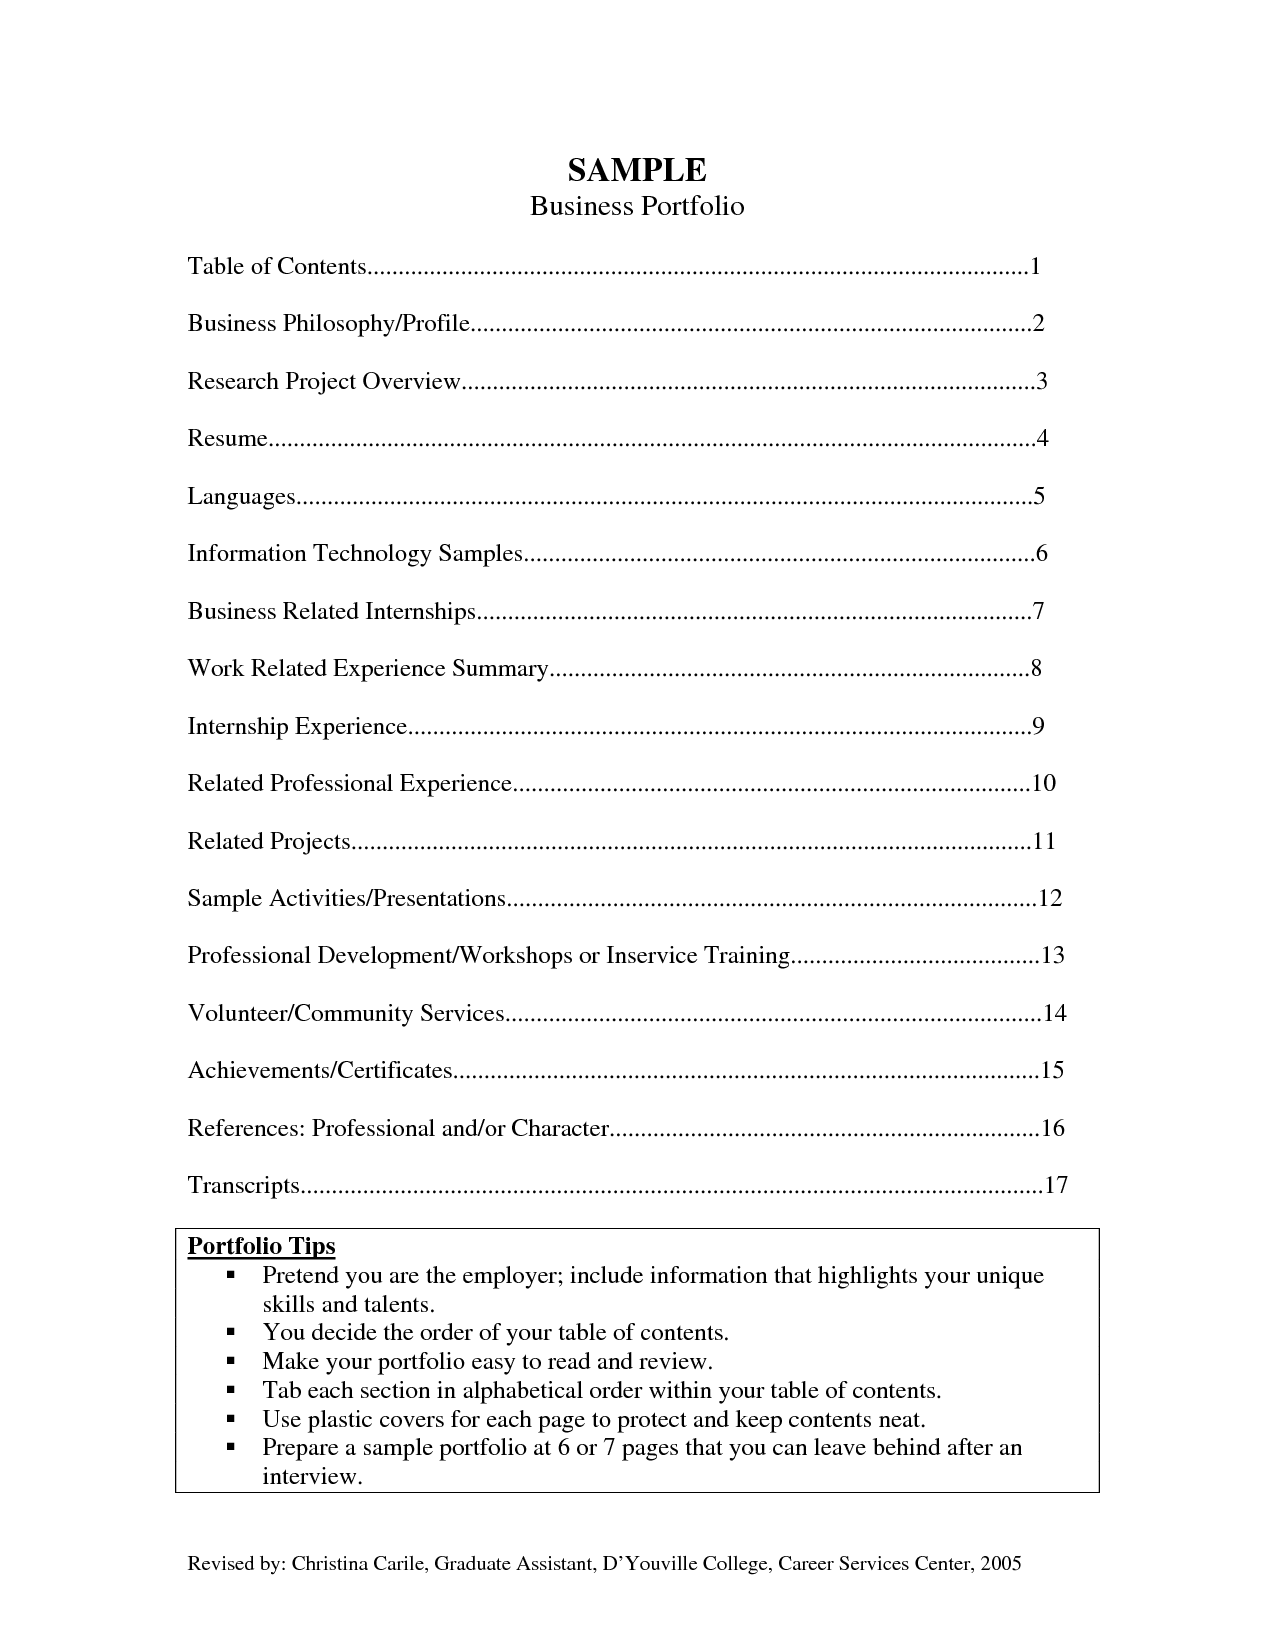 career portfolio examples sample business career portfolio career portfolio examples sample business career portfolio sample